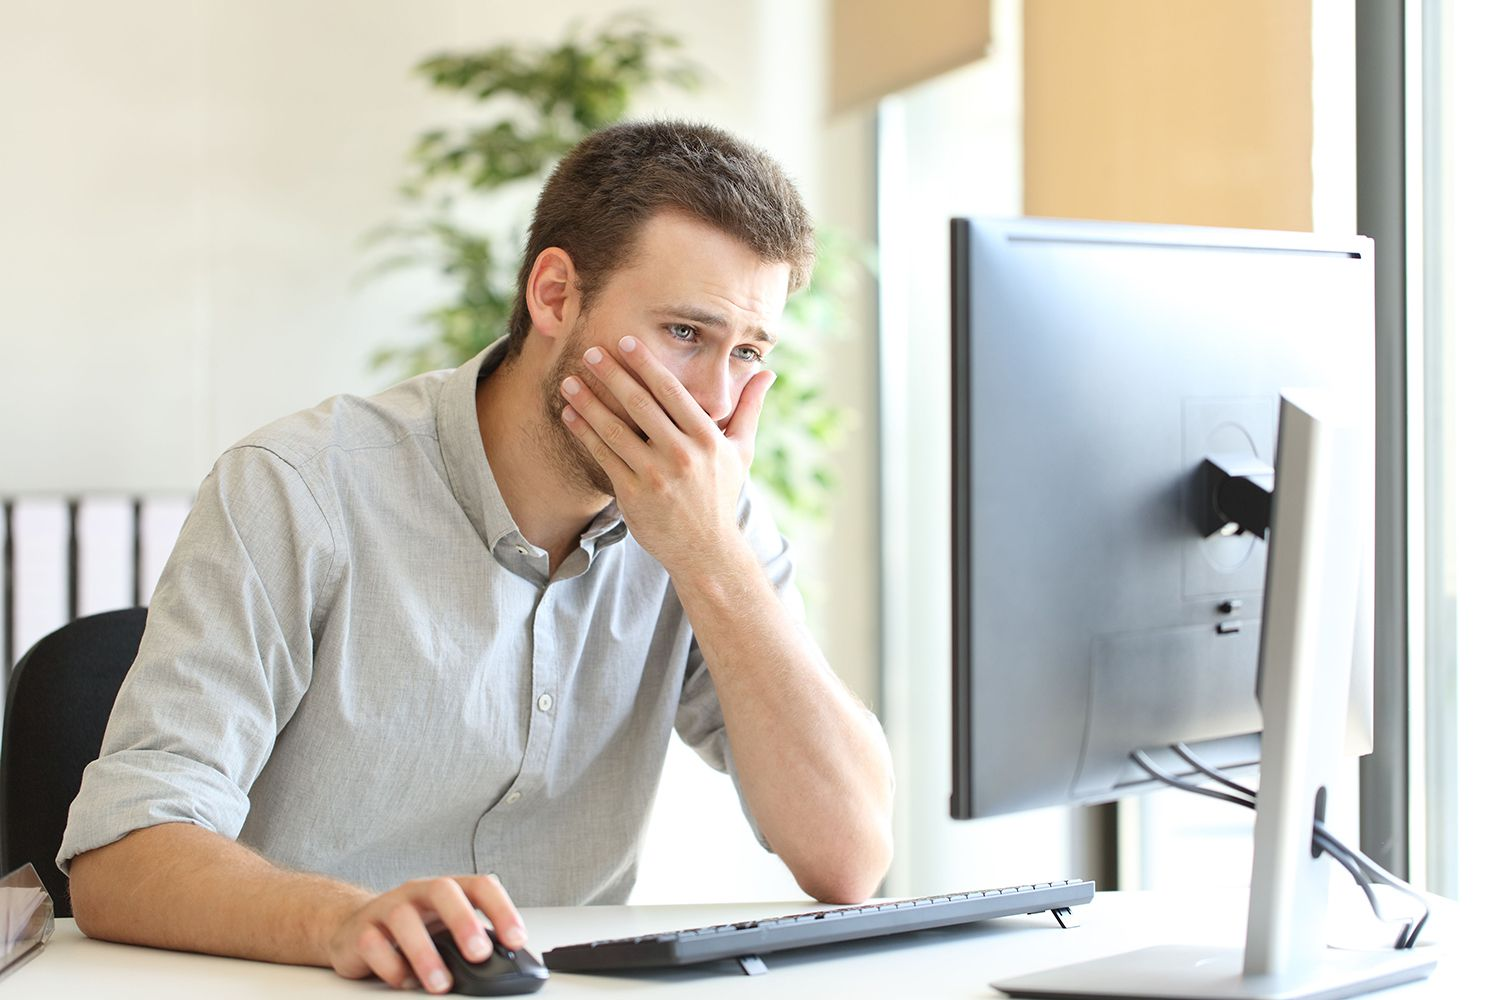 Man looking at computer with hand over mouth, worried about his mistake